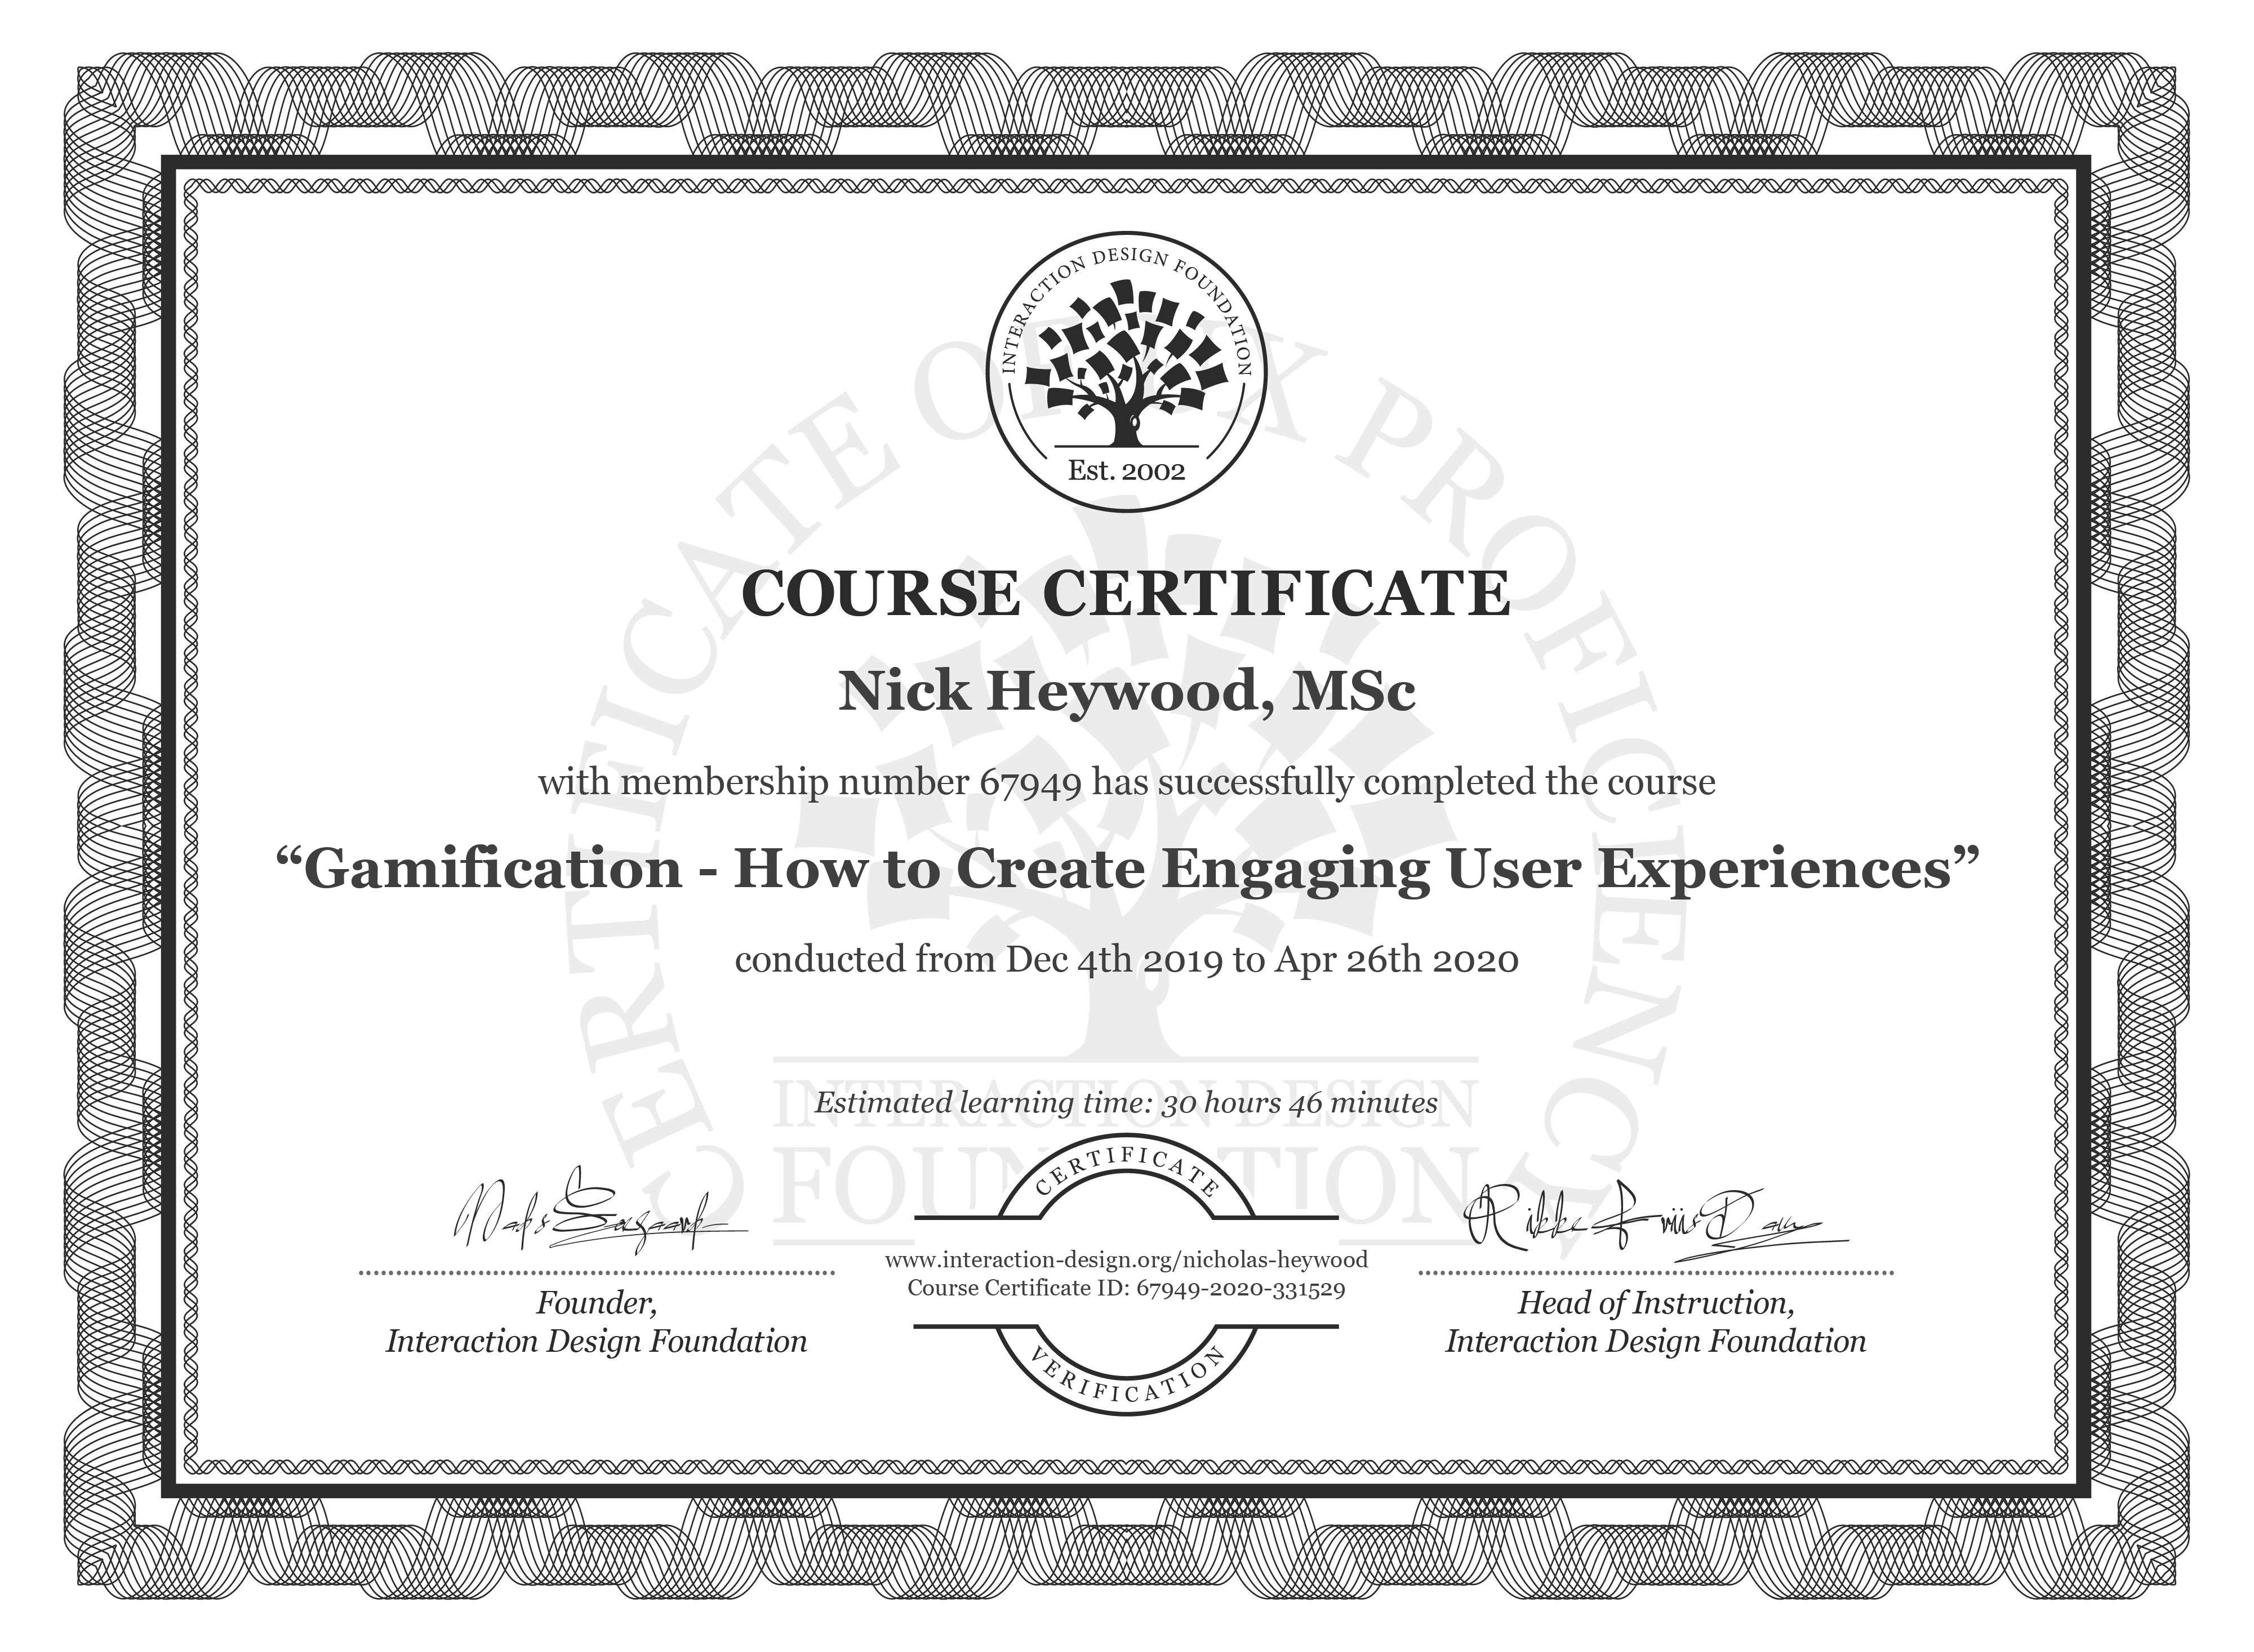 Nicholas Heywood's Course Certificate: Gamification – Creating Addictive User Experiences